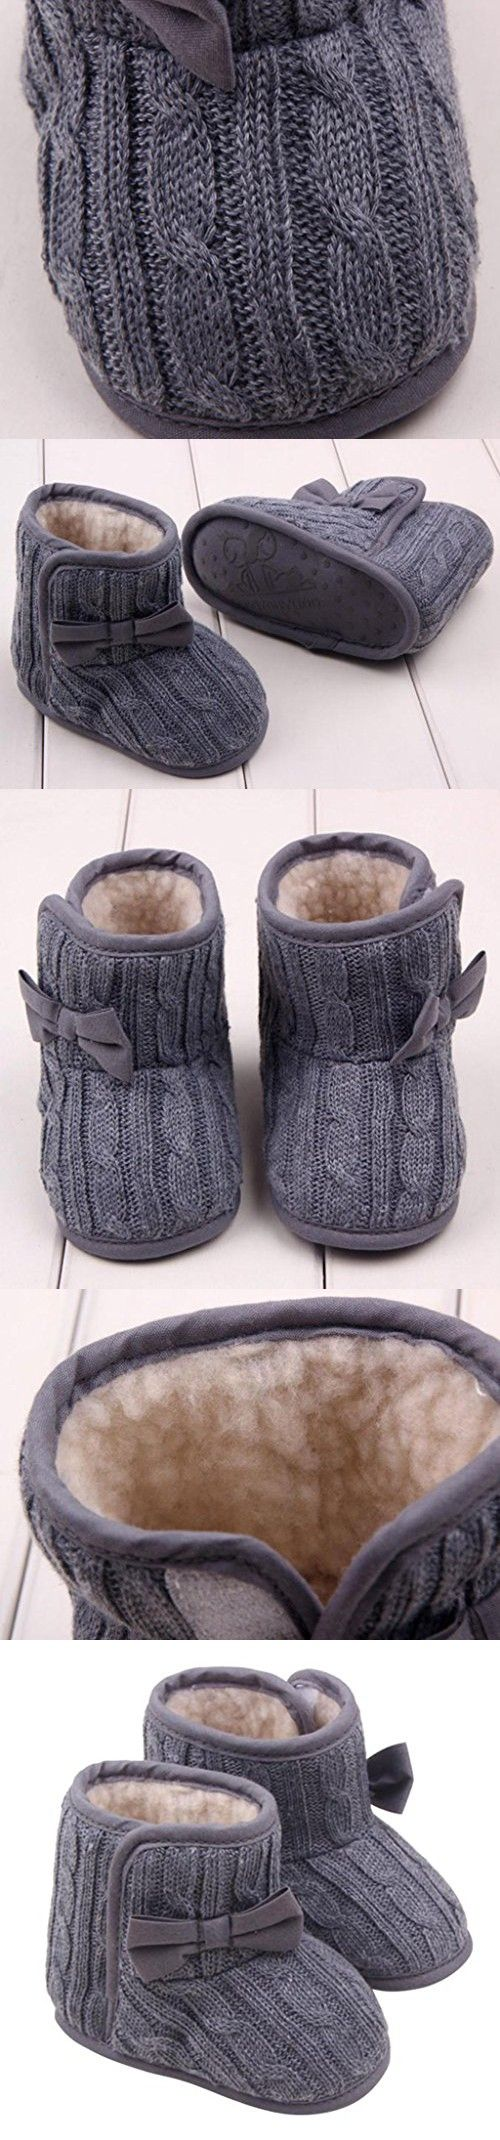 Usstore 1Pair Infant Baby Toddler Bowknot Winter Warm Boots Walker Shoes (0- 6months, B)